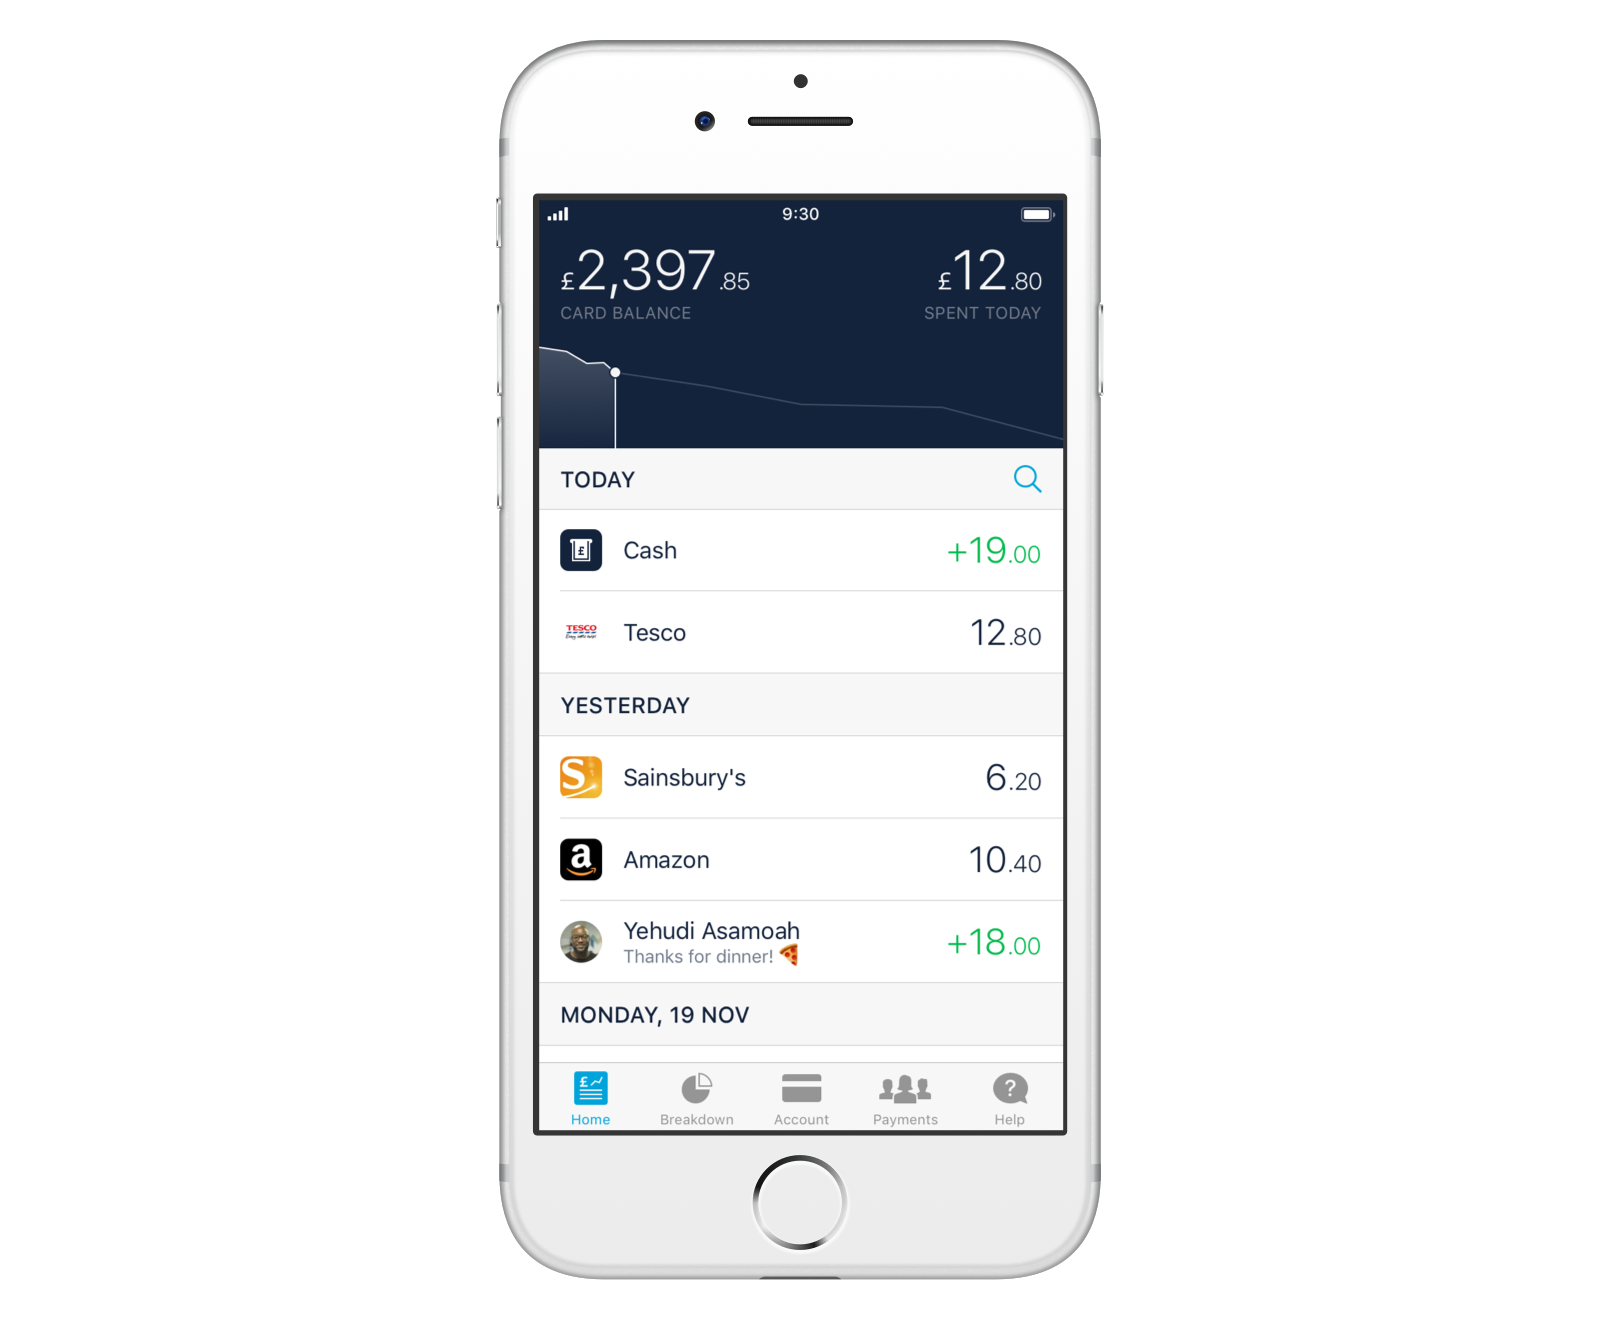 Screen showing how a cash deposit appears in your transaction feed in the Monzo app